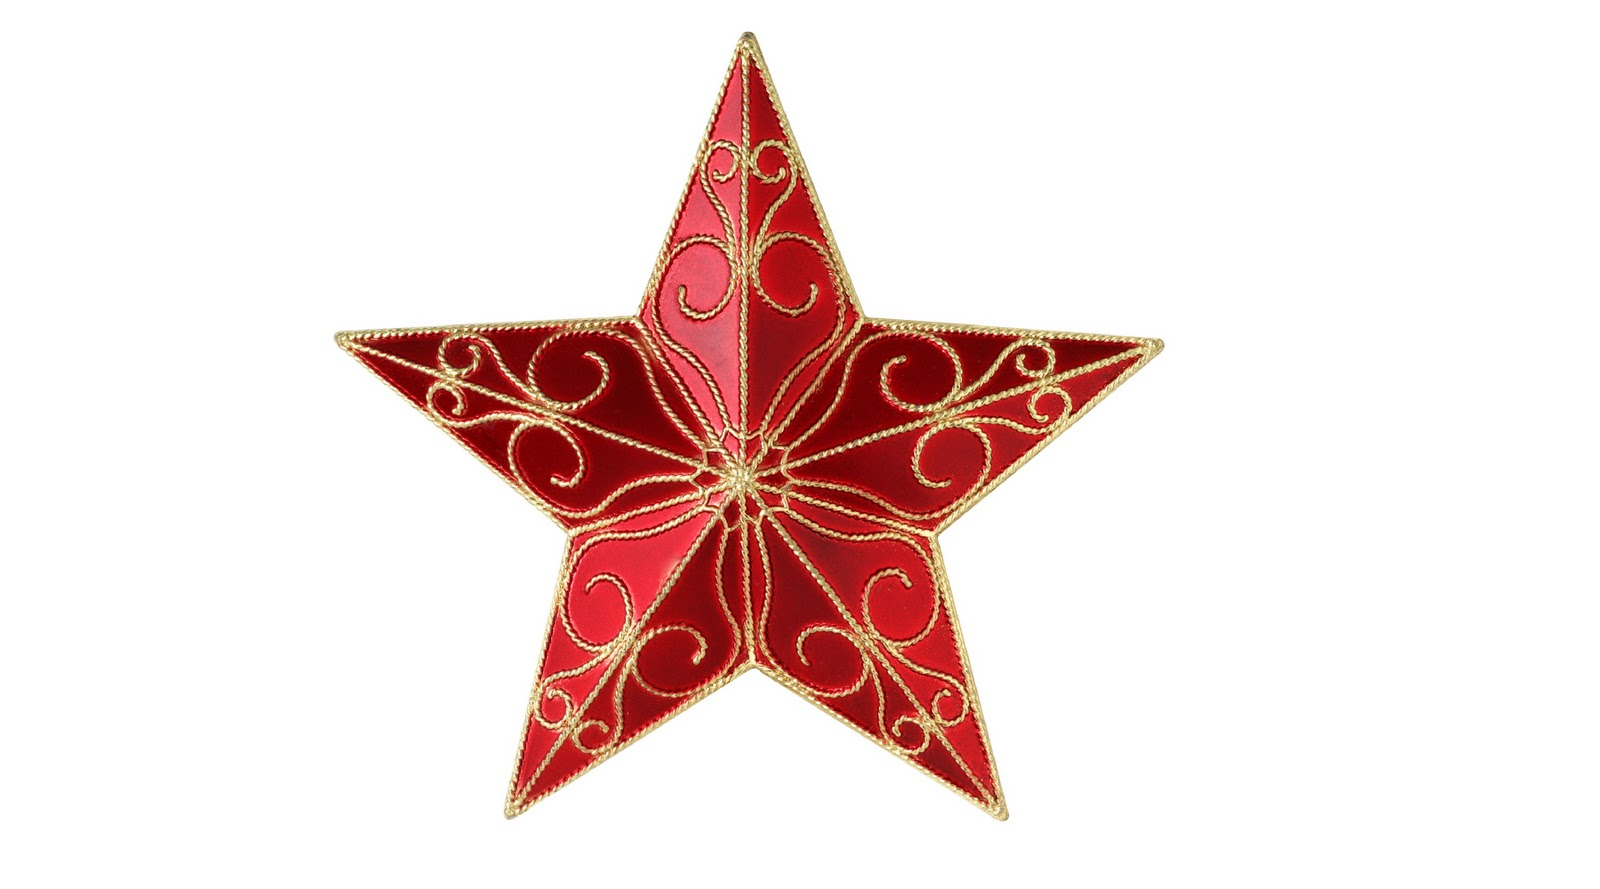 Red Christmas Tree Star HD 3D Wallpaper The Wallpaper